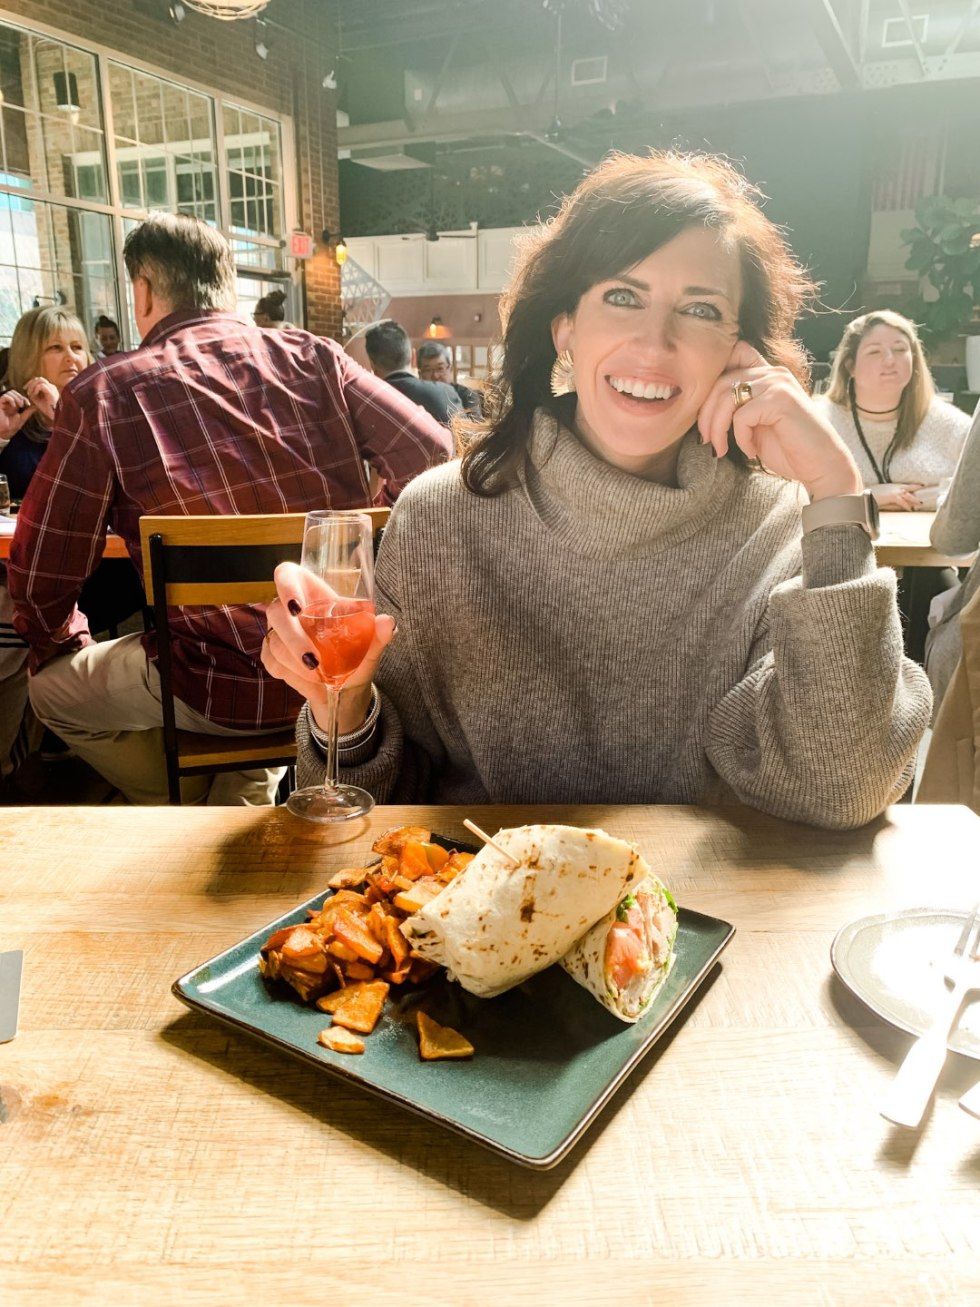 20 Moments I am Grateful for in 2020 - I'm Fixin' To - @imfixintoblog |Moments to be Grateful for by popular NC lifestyle blog, I'm Fixin' To: image of a woman wearing a grey turtleneck sweater and sitting in front of a plate of food at a restaurant.